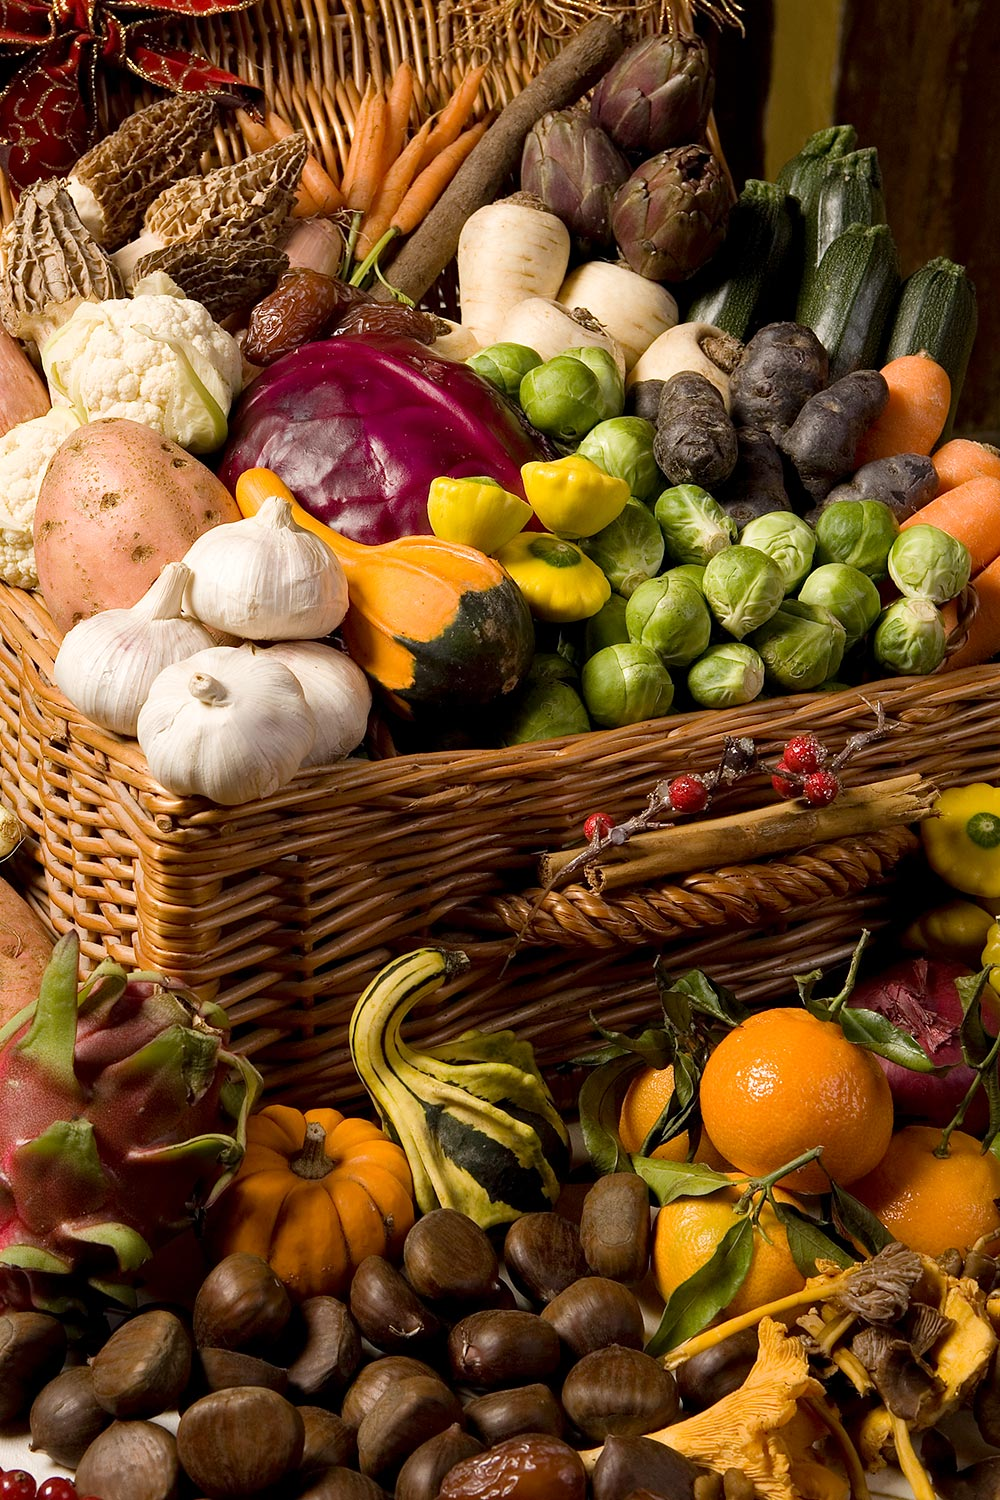 Fruit vegetables and nuts displayed in a wicket basket for magazine food feature.